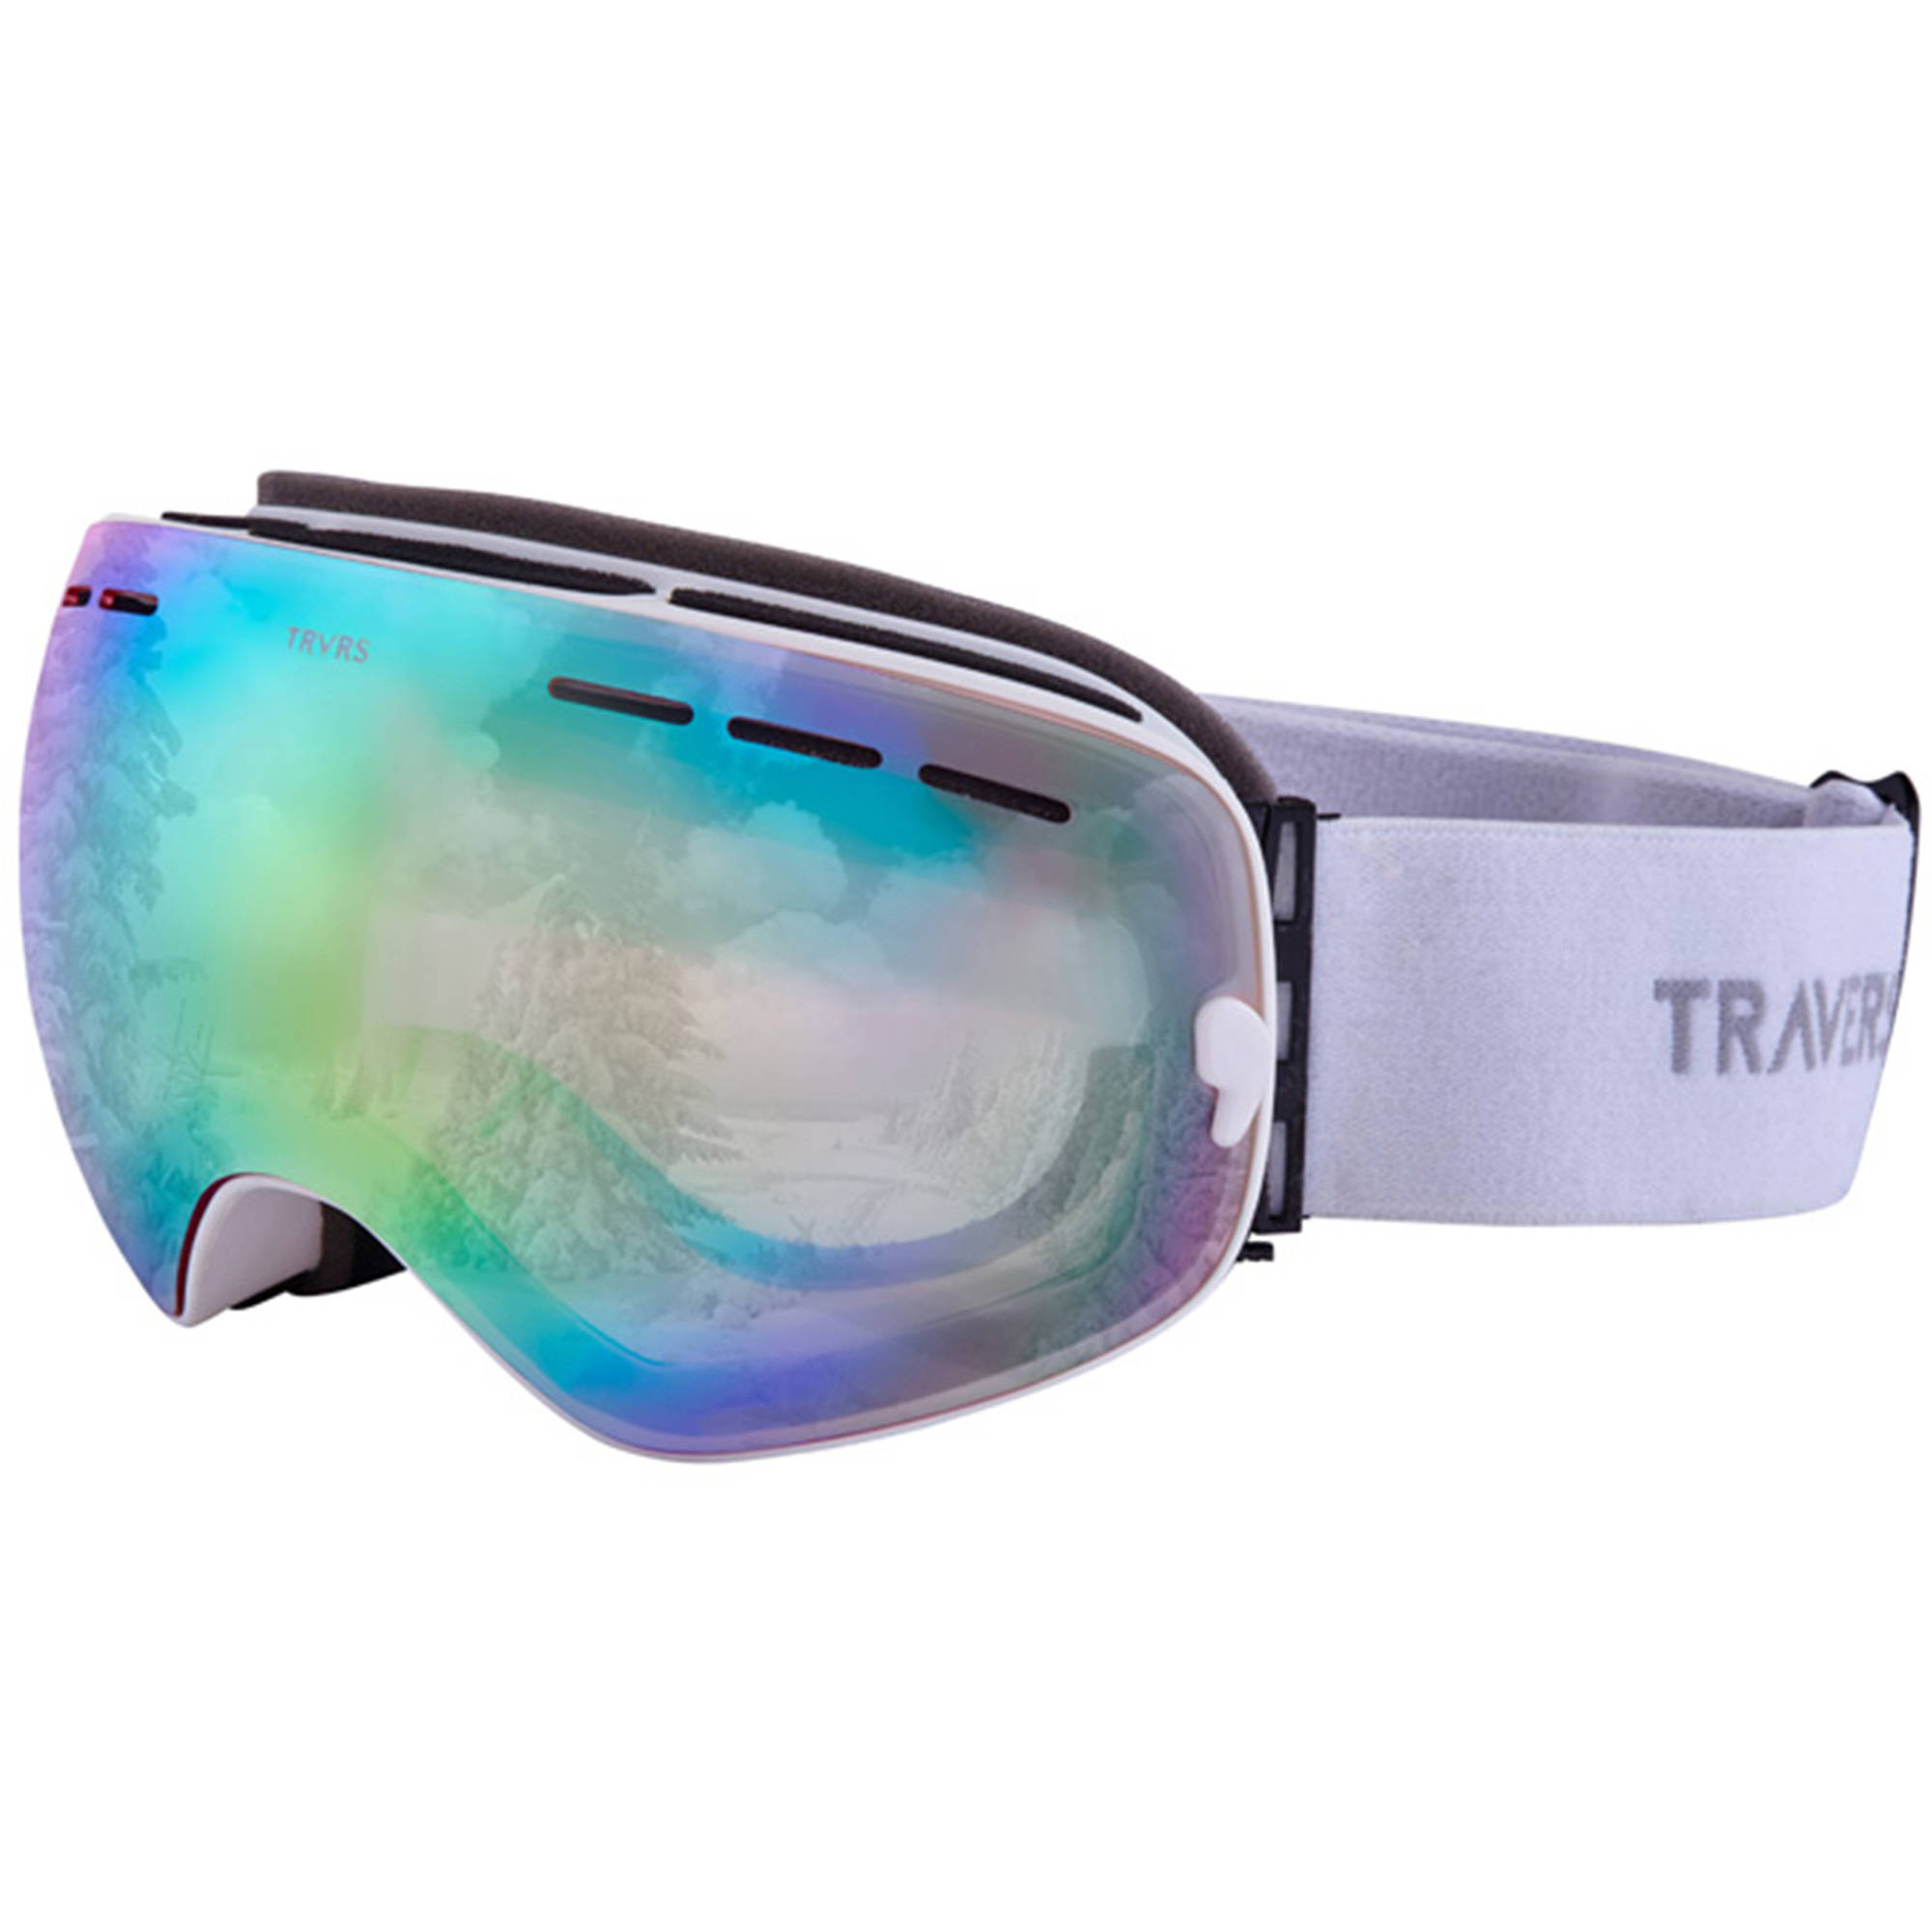 Traverse Virgata Ski, Snowboard, and Snowmobile Goggles, Multiple Colors Available by Traverse Sports